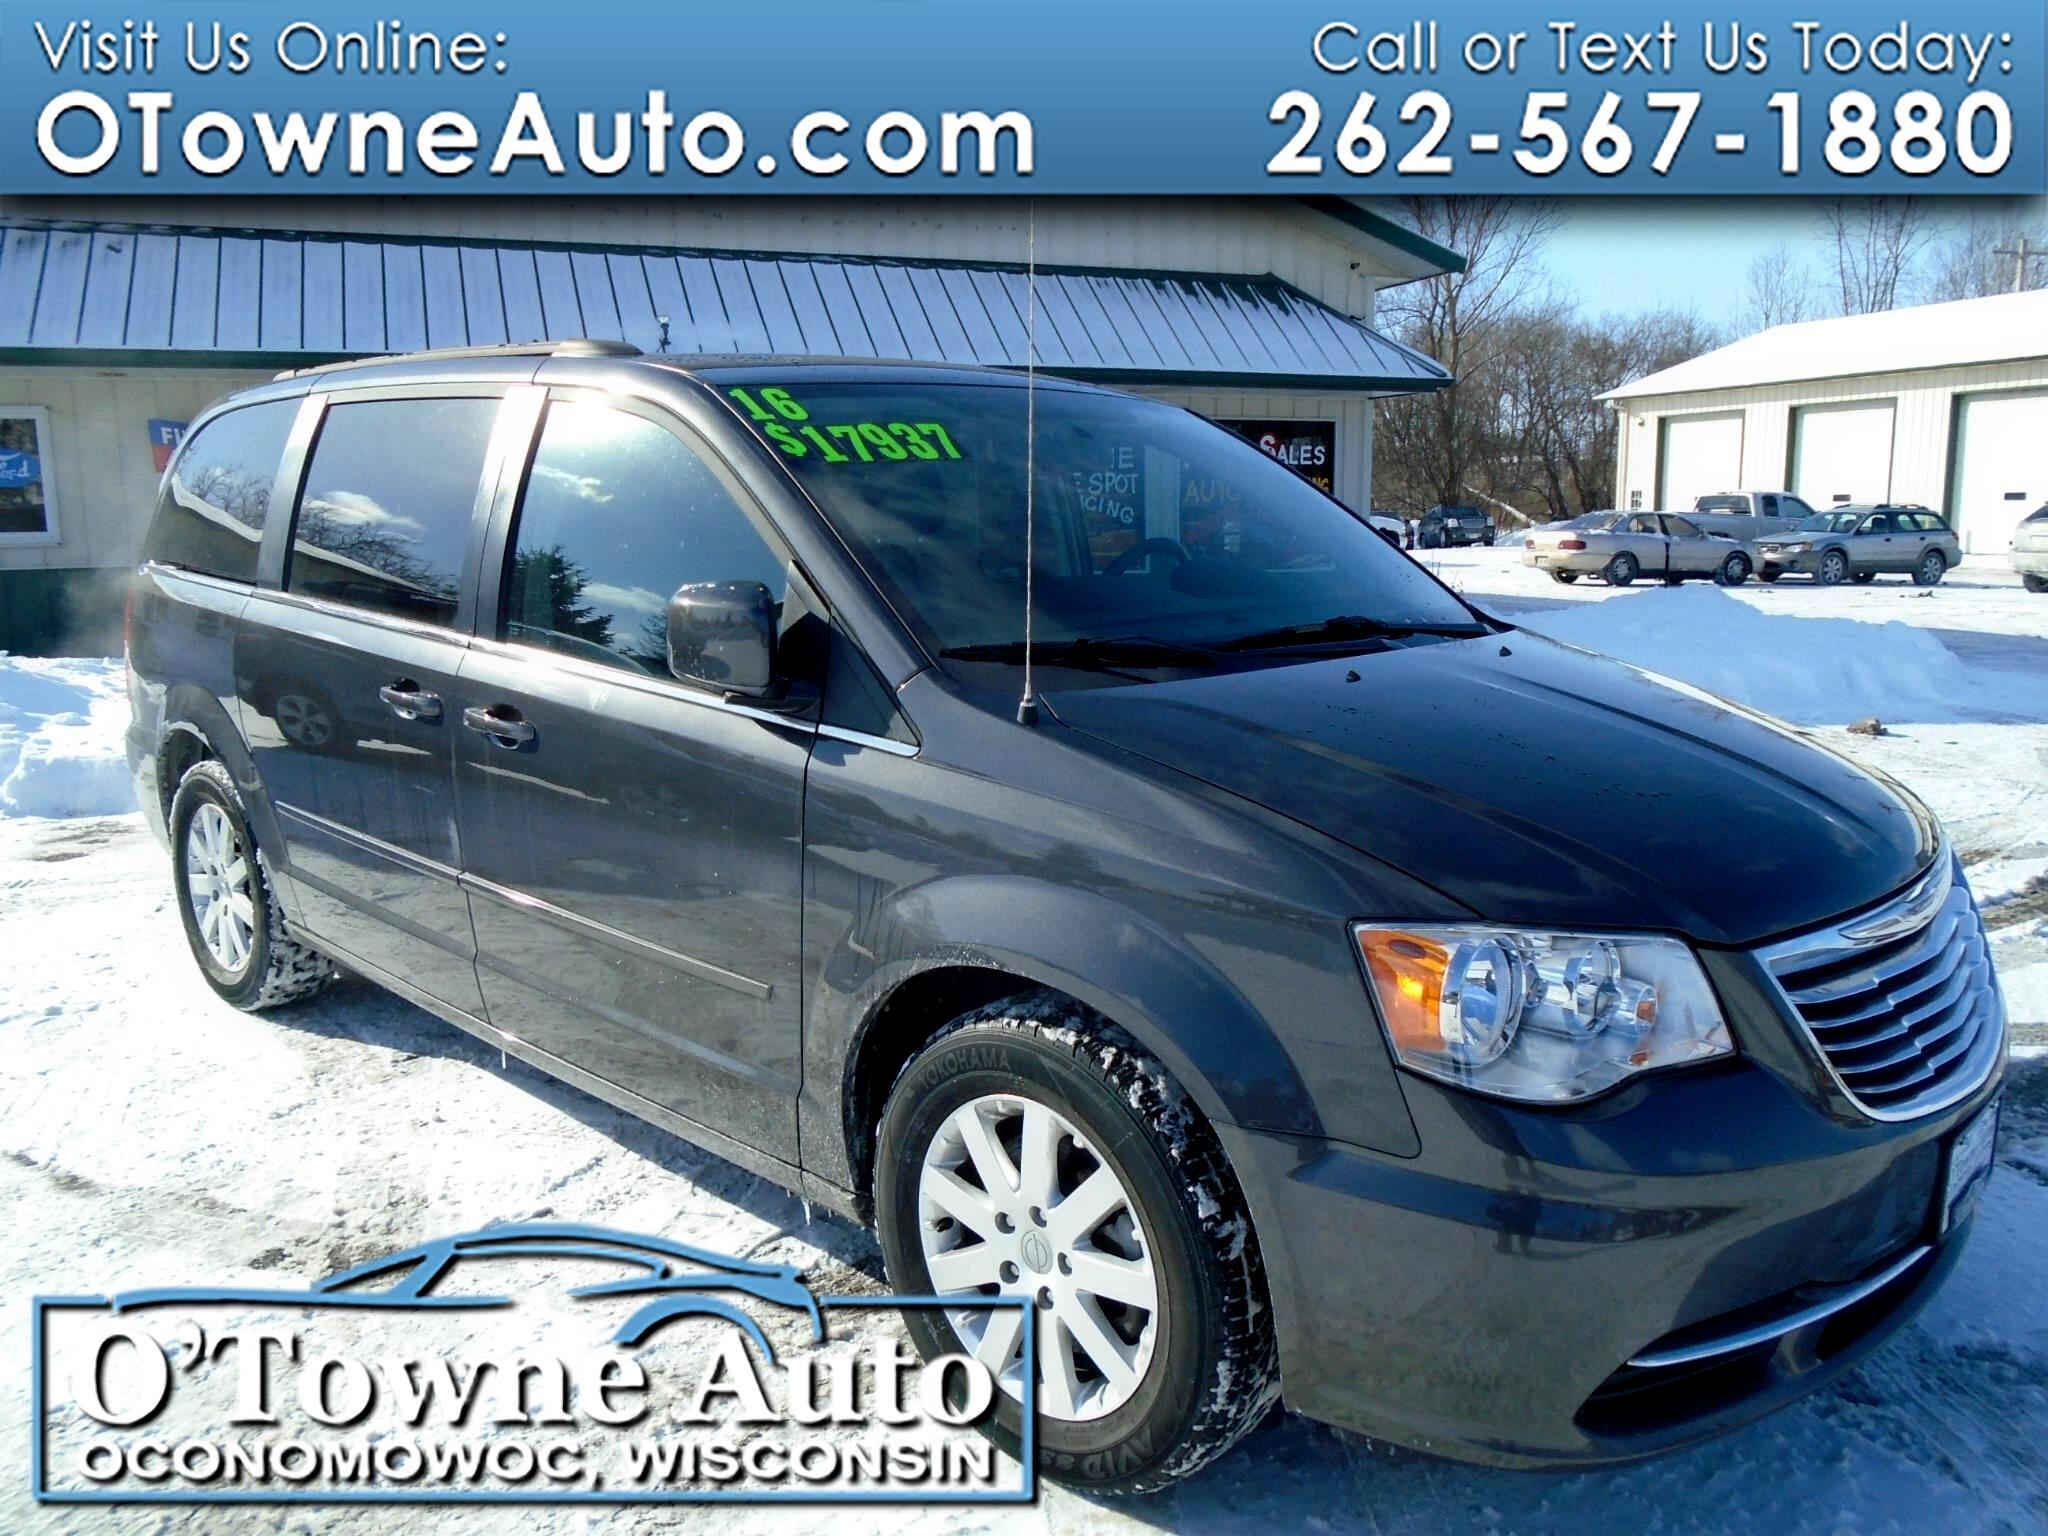 2016 Chrysler Town & Country 4dr Wgn LX